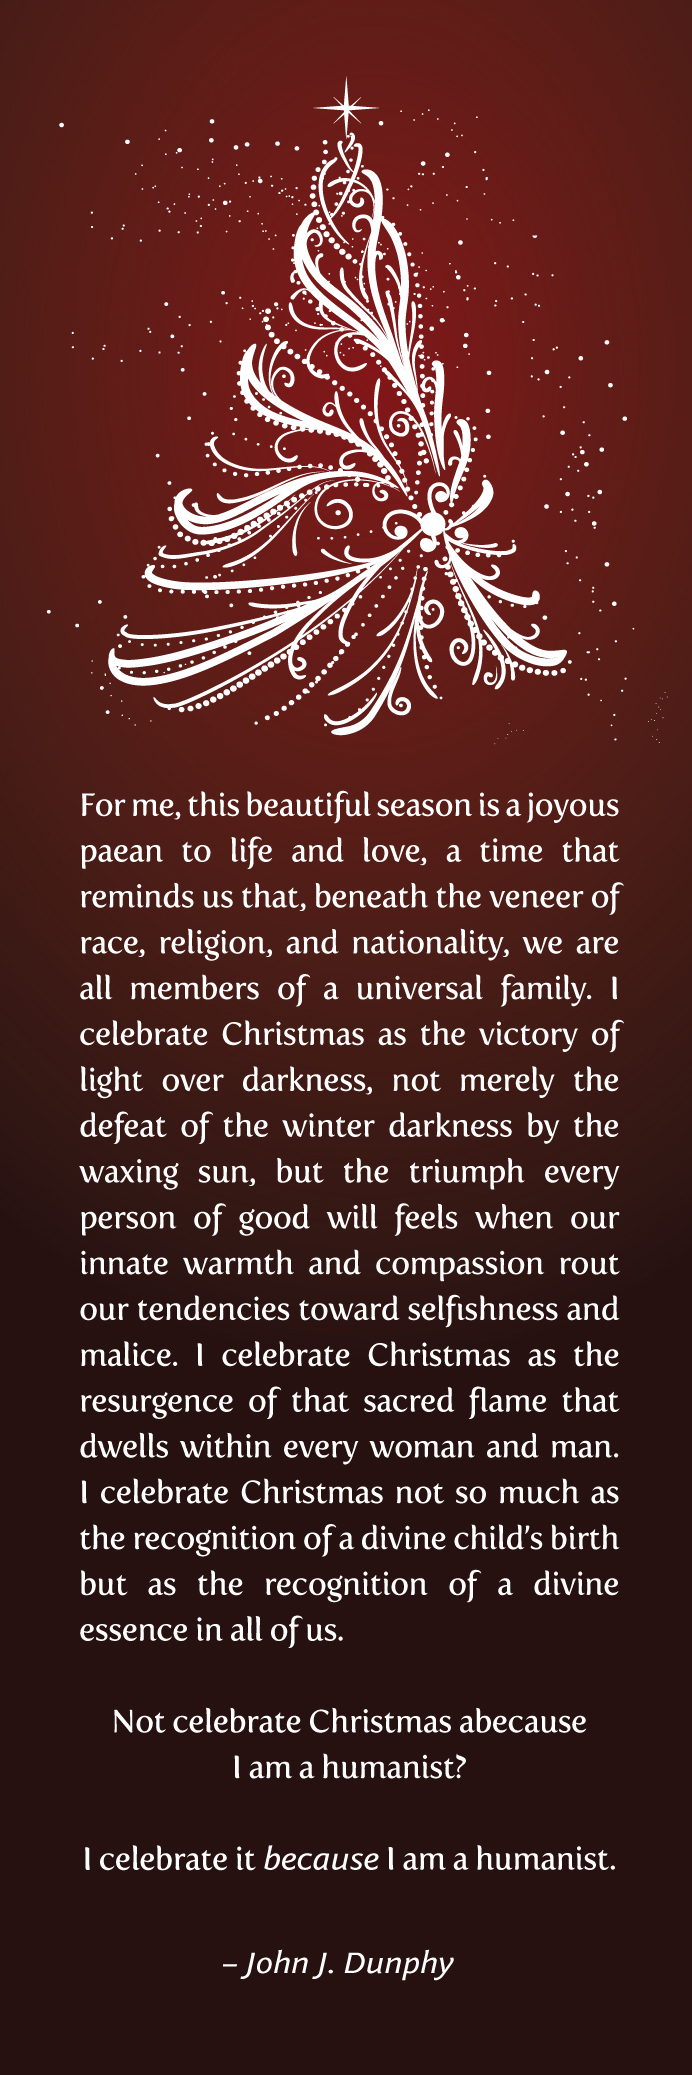 Meaning of the number 22 in the - The Wonderful Sentiments Above Are From The Article Humanists Find Meaning In Christmas By John J